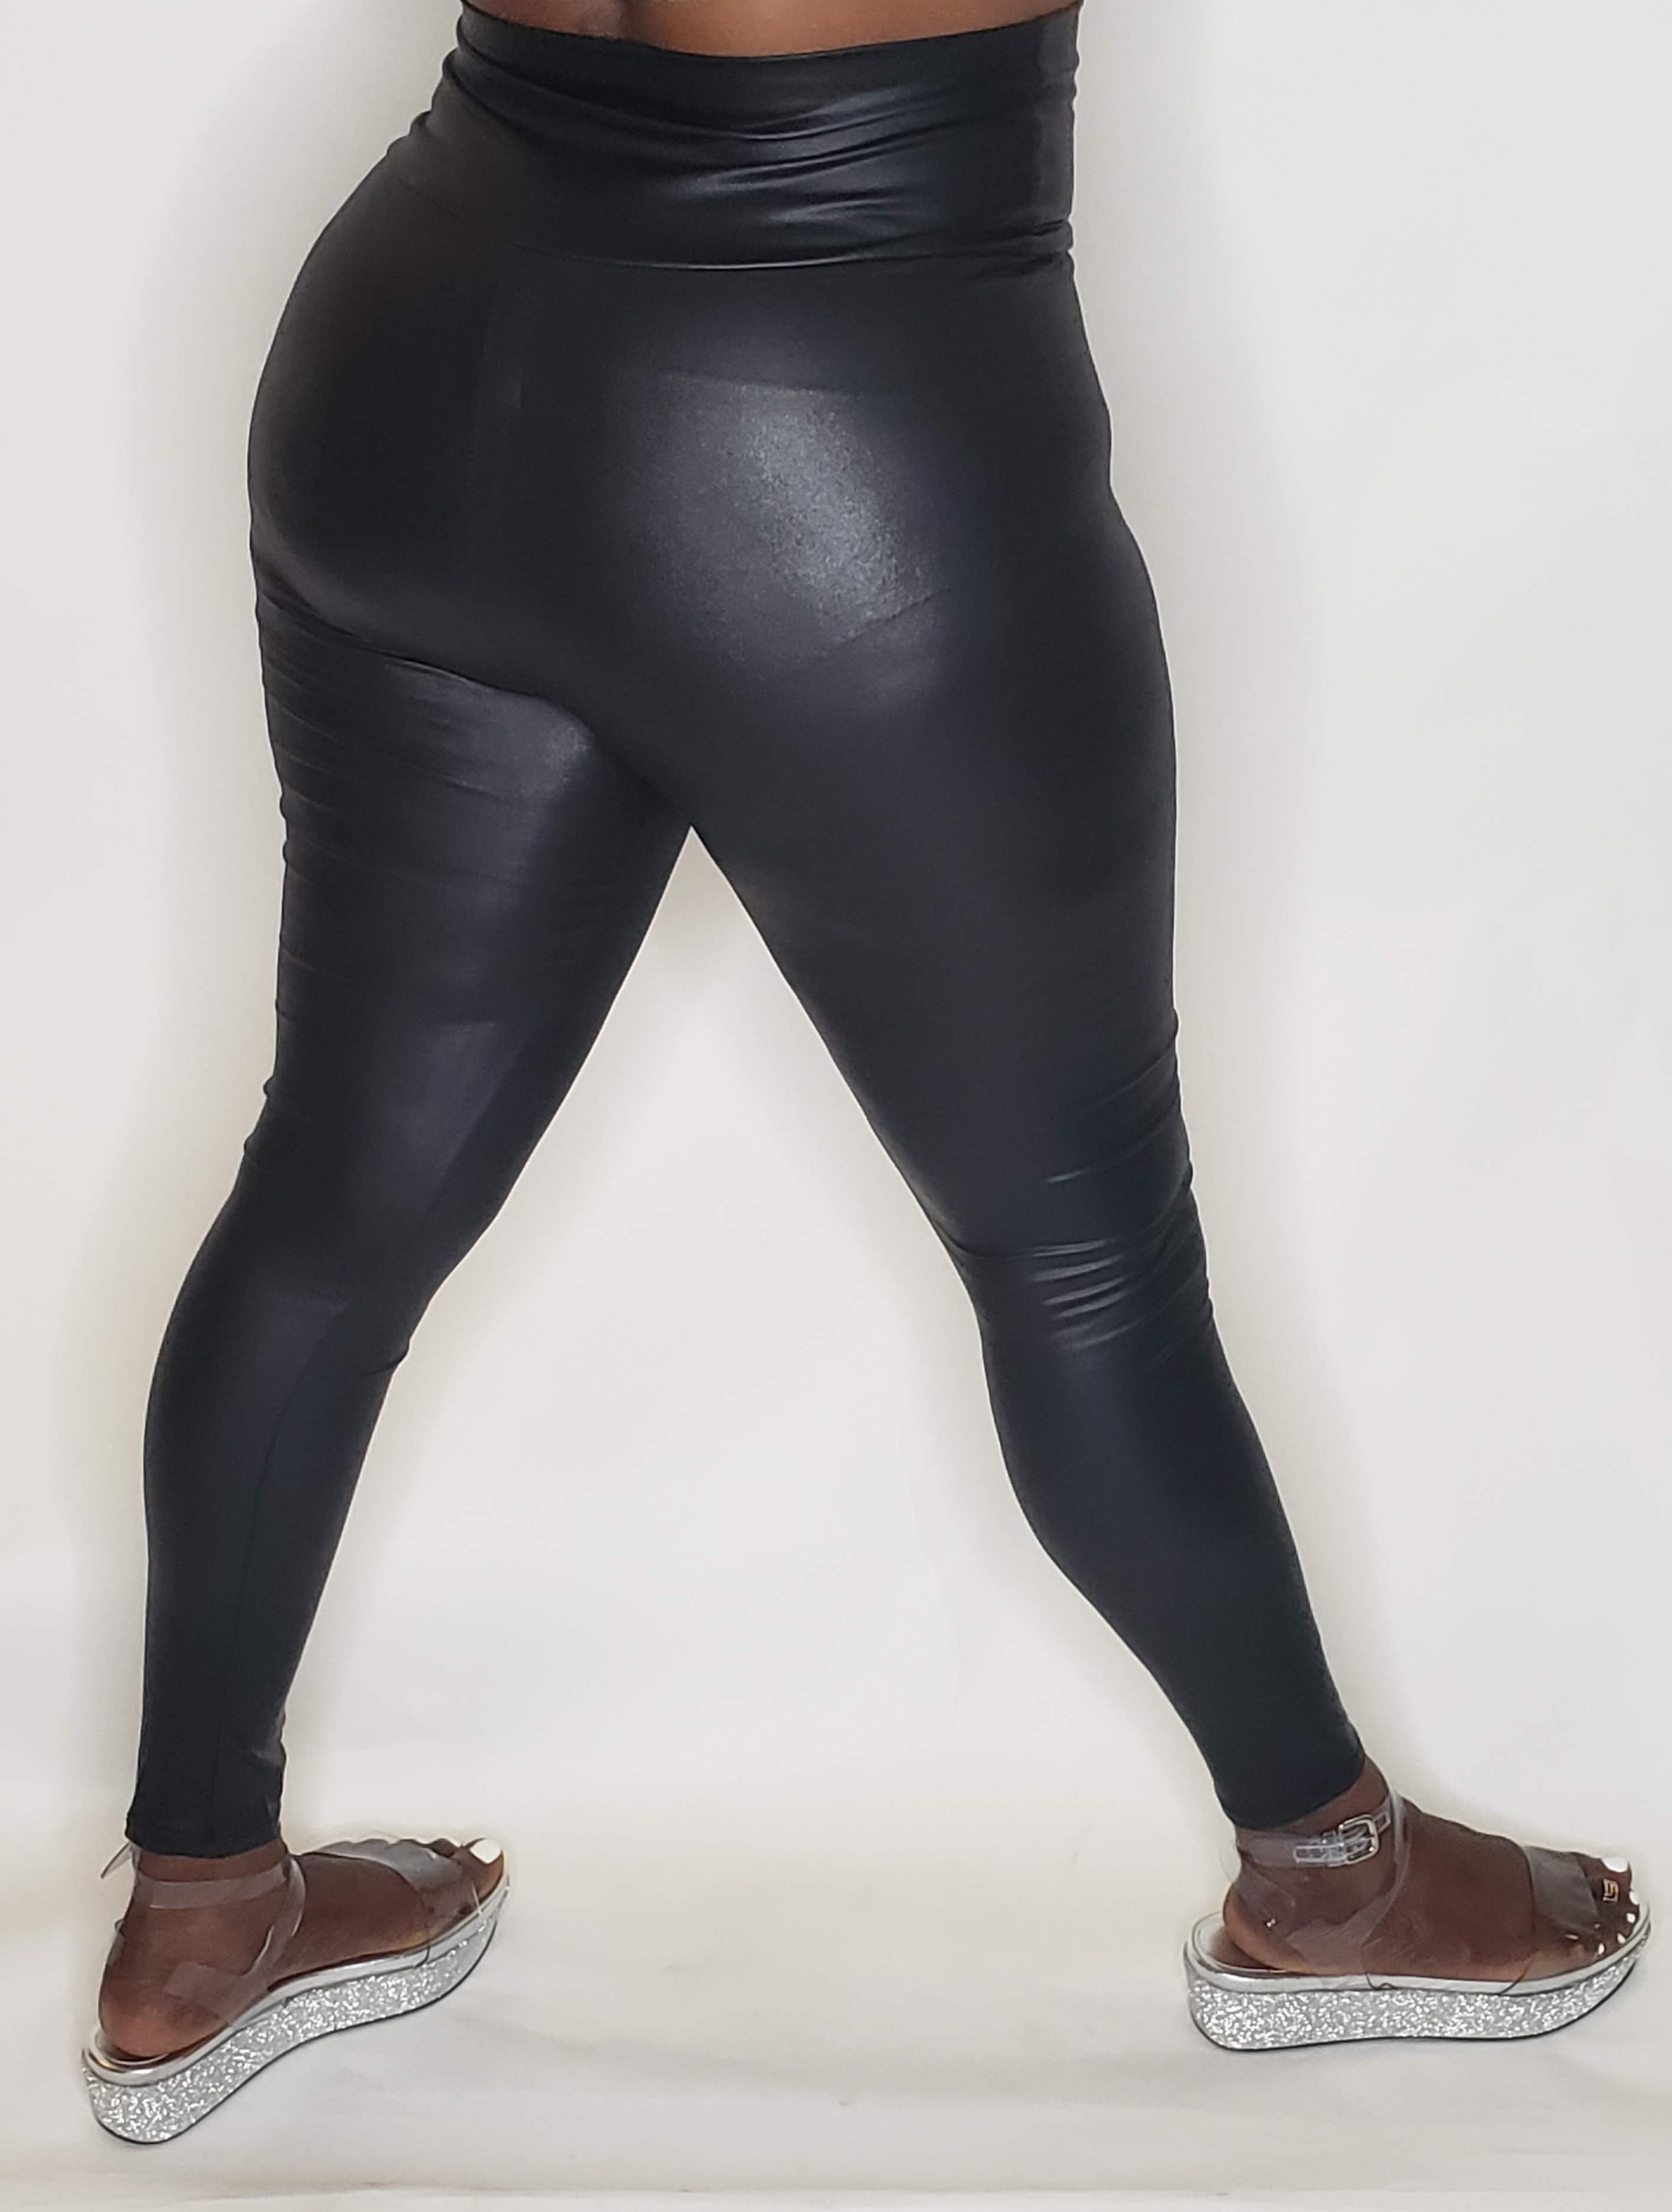 Smooth Laminated Leggings - Touch Me Textures